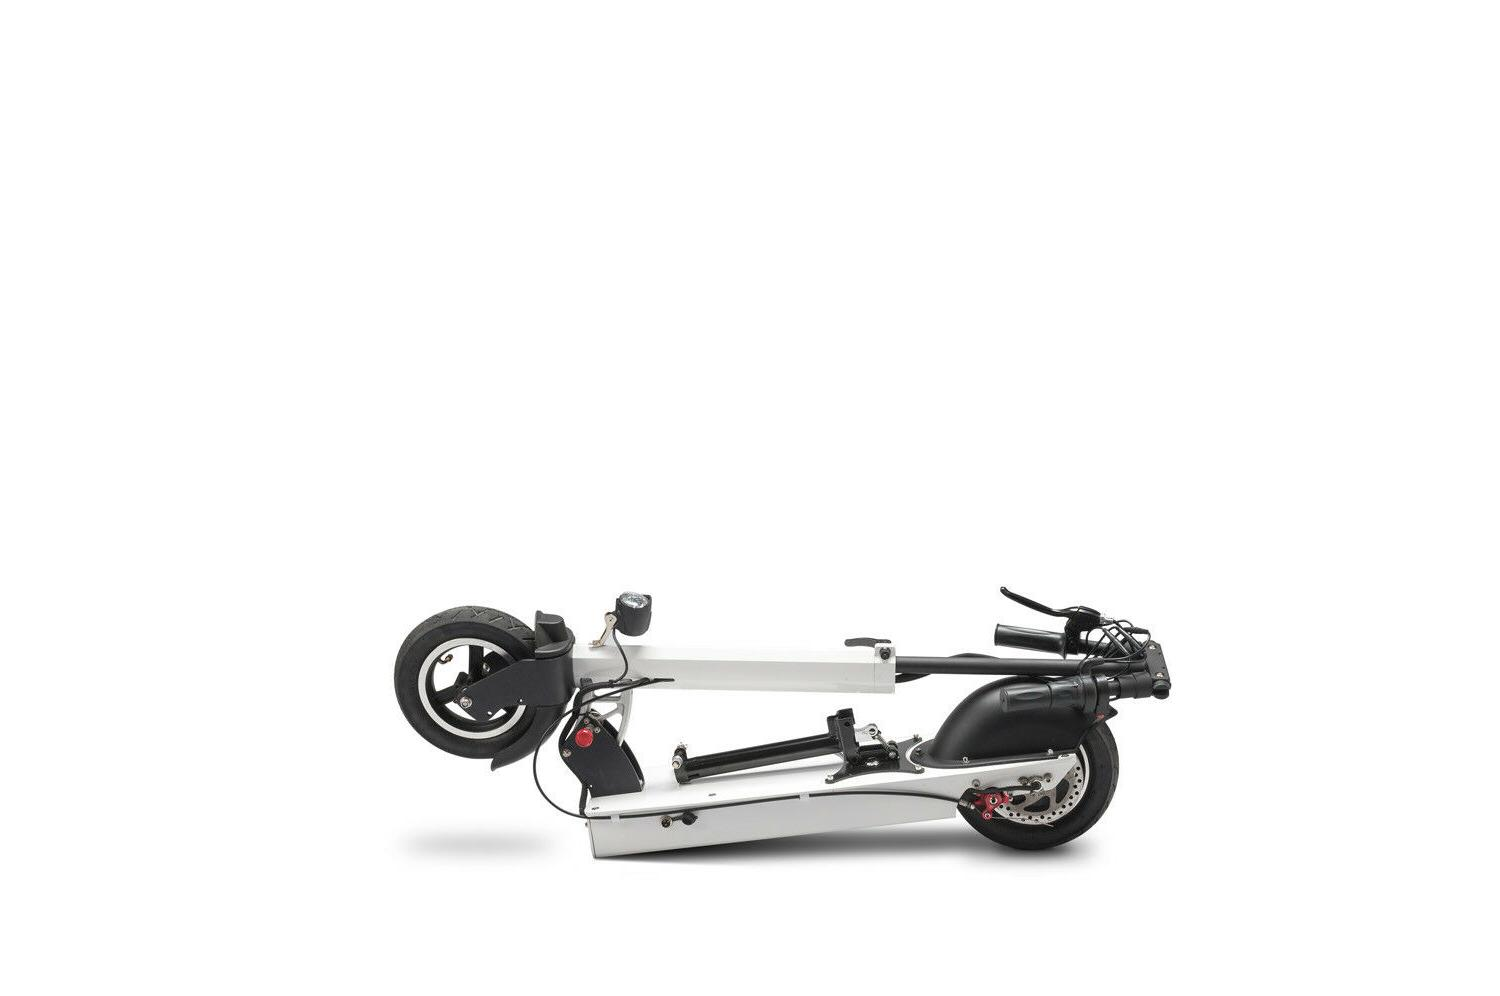 Electric Commuter Scooter Watt EV Lithium Ion Battery 22.8 Miles Per Charge